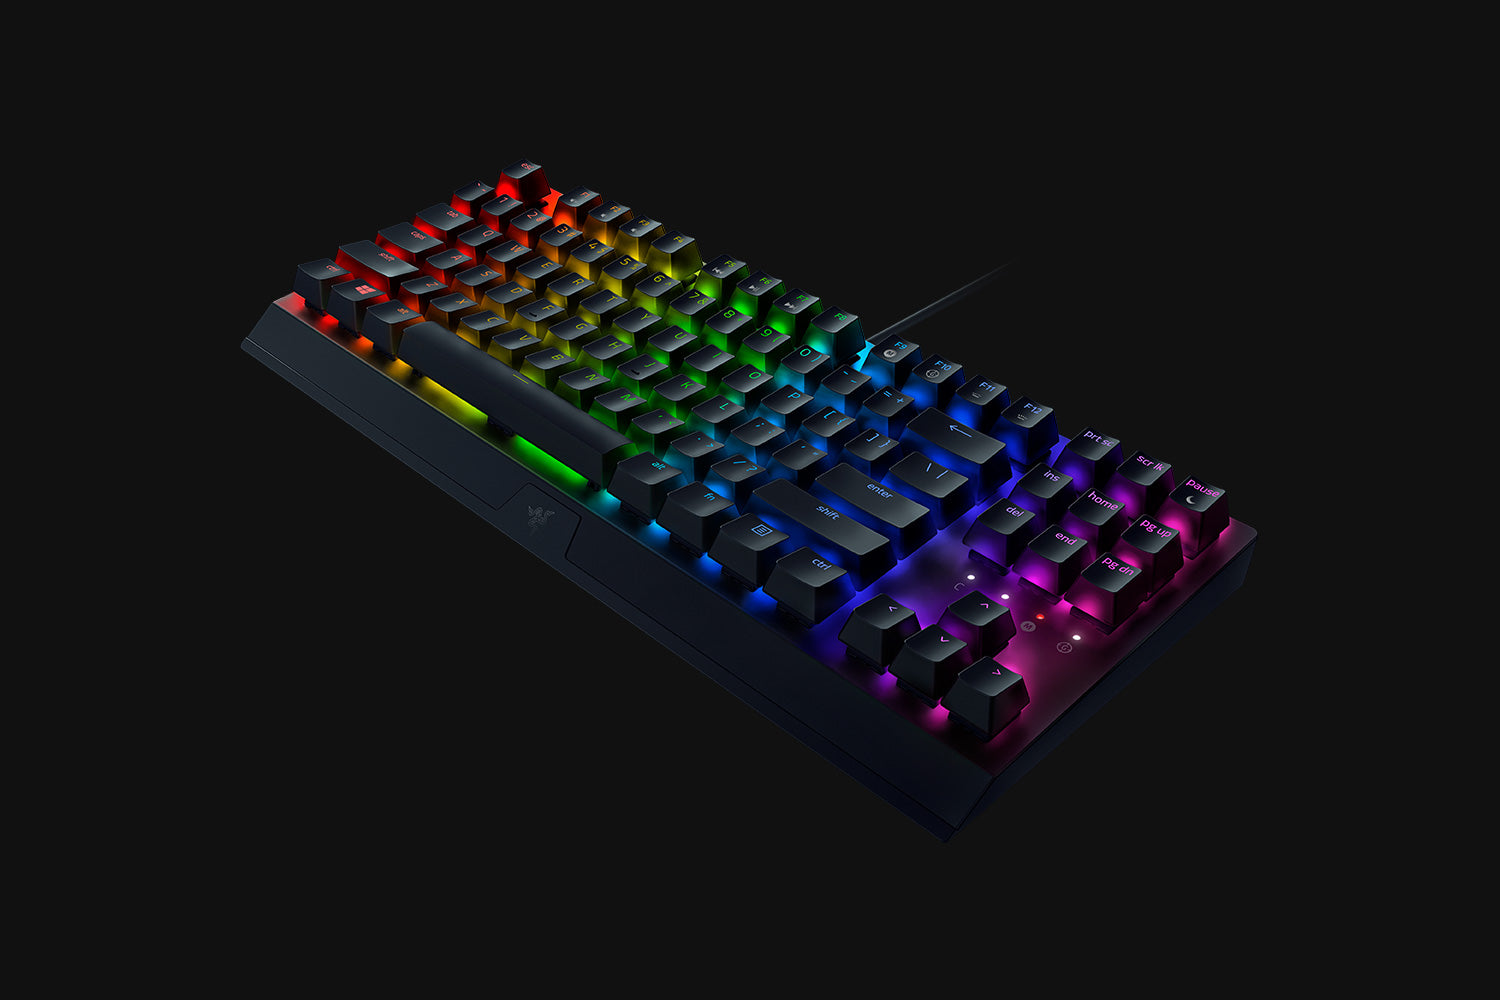 RAZER BLACKWIDOW V3 TENKEYLESS-RZ03-03490100-R3M1 | Mechanical Gaming Keyboard, Compact Form Factor, Cable Routing Options, Engineered For Durability, Fully Controllable Keys, Powered By Razer Chroma RGB, Razer Green Switches Tactile And Clicky